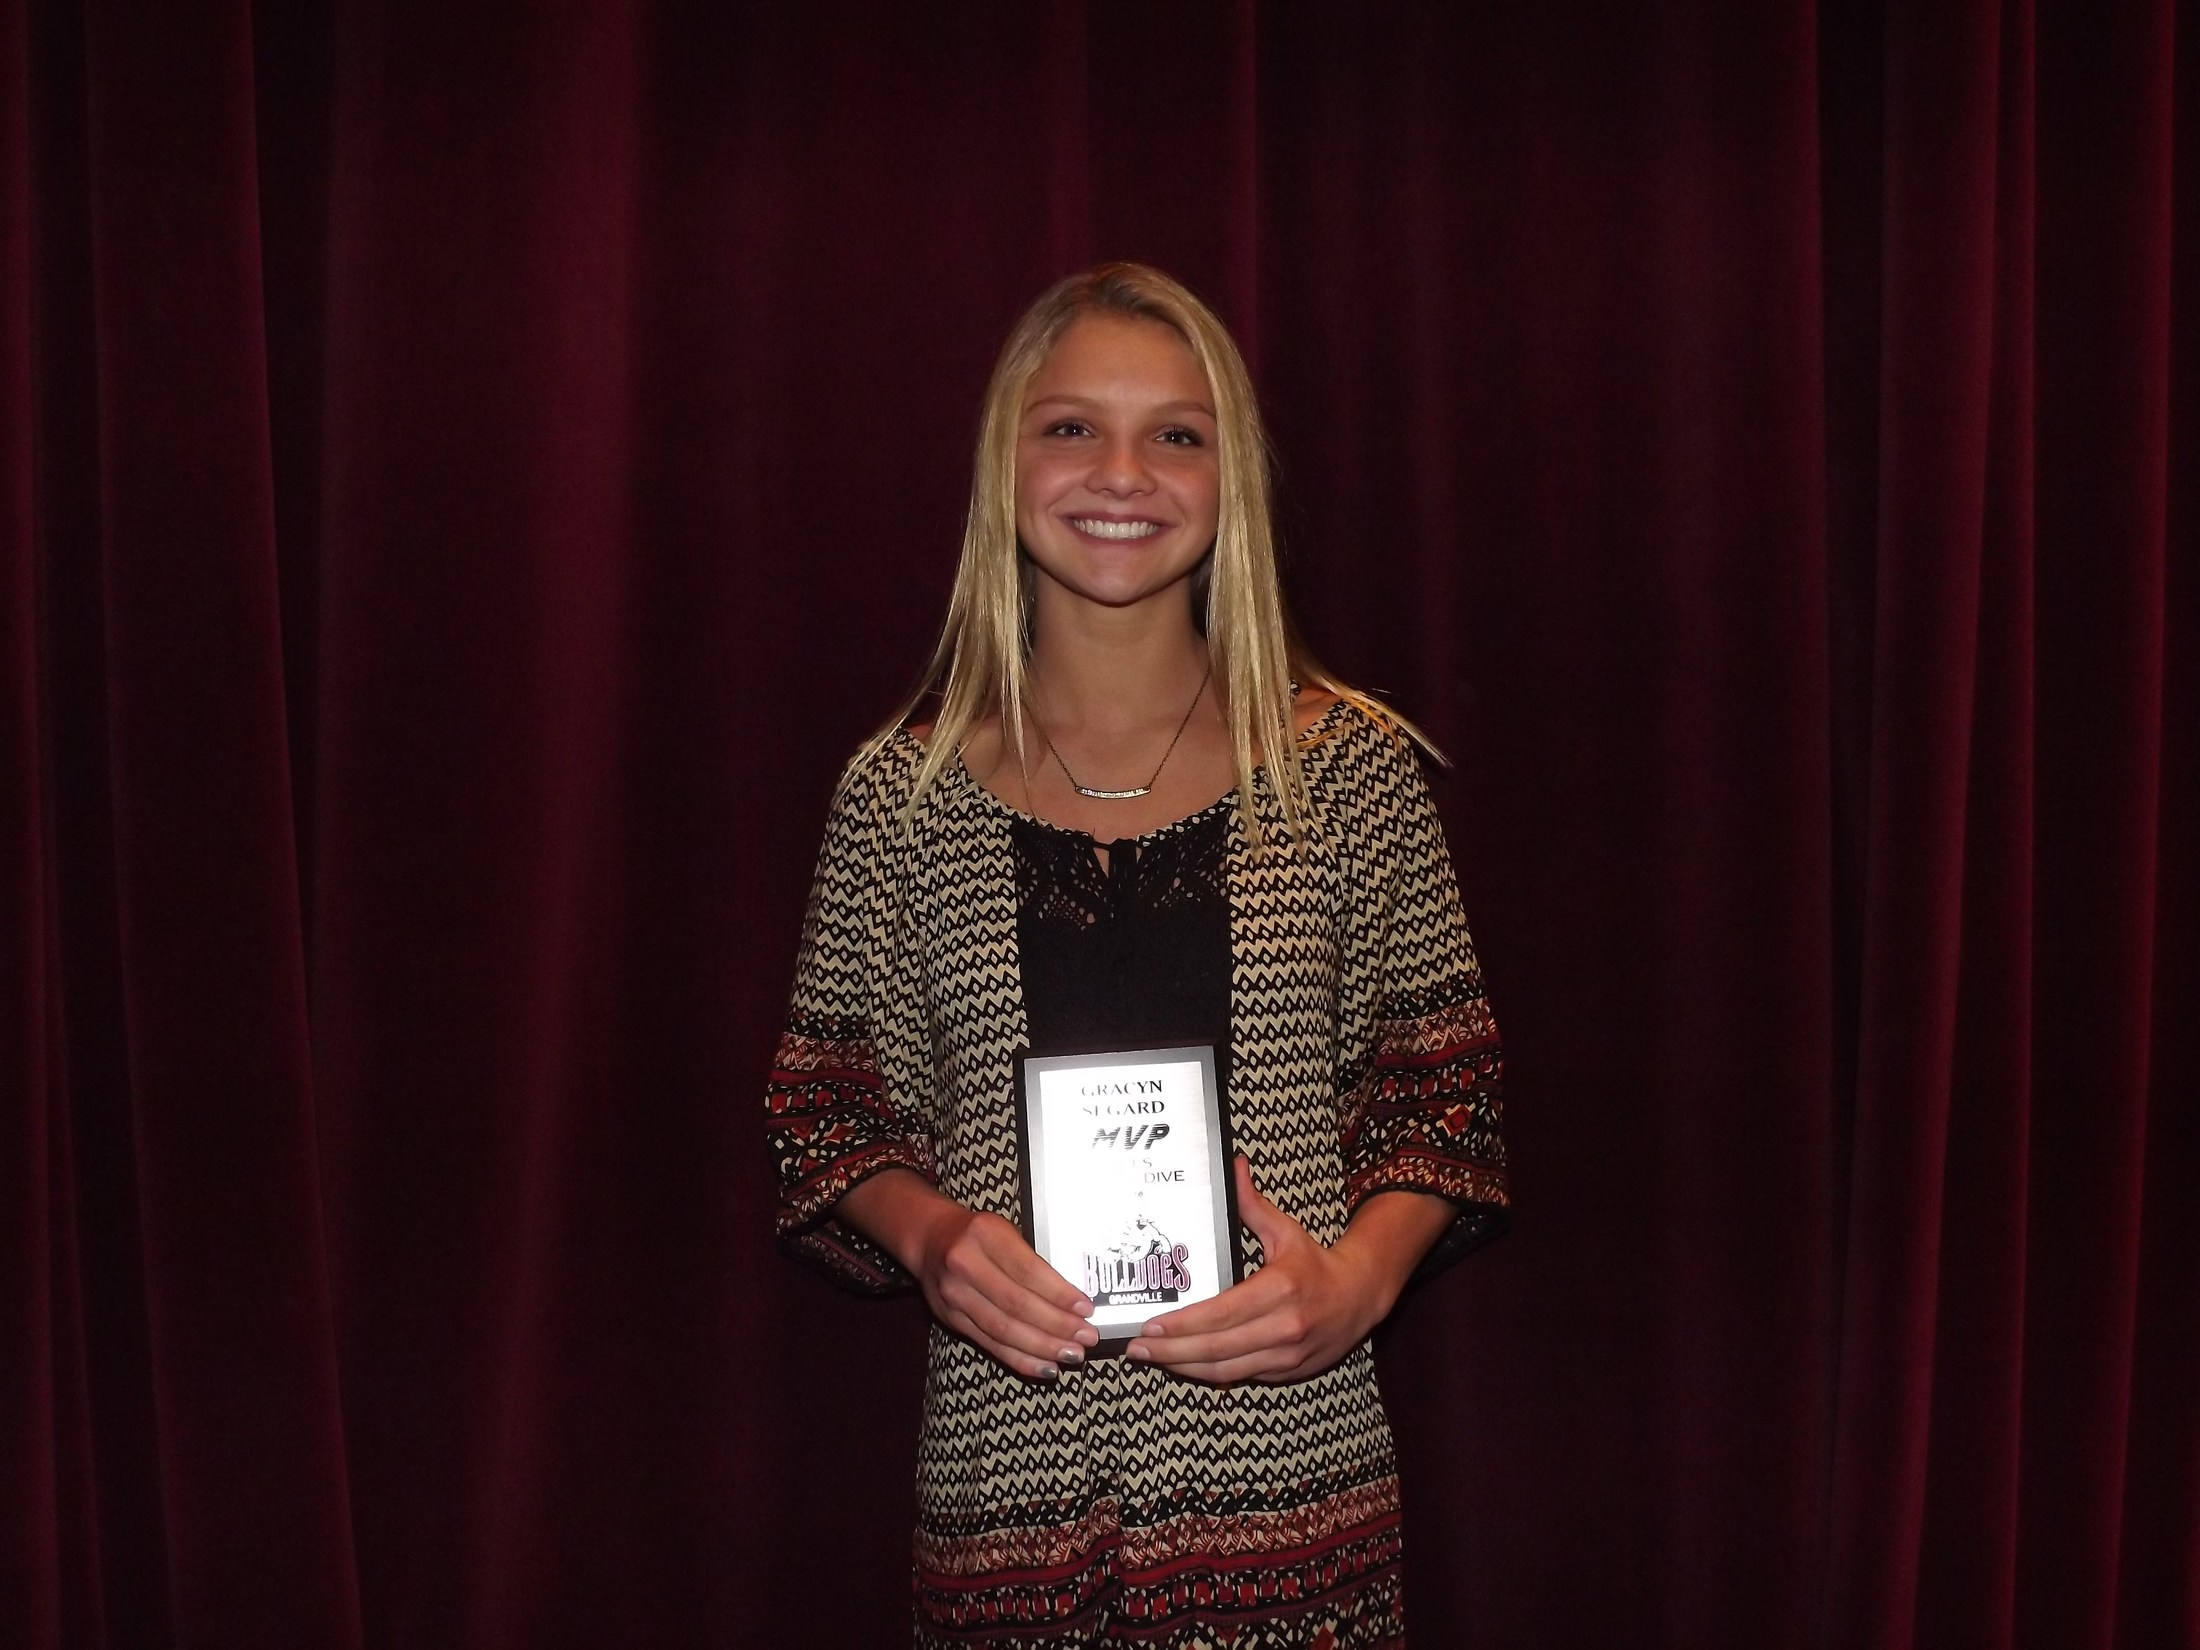 girl with diving MVP award